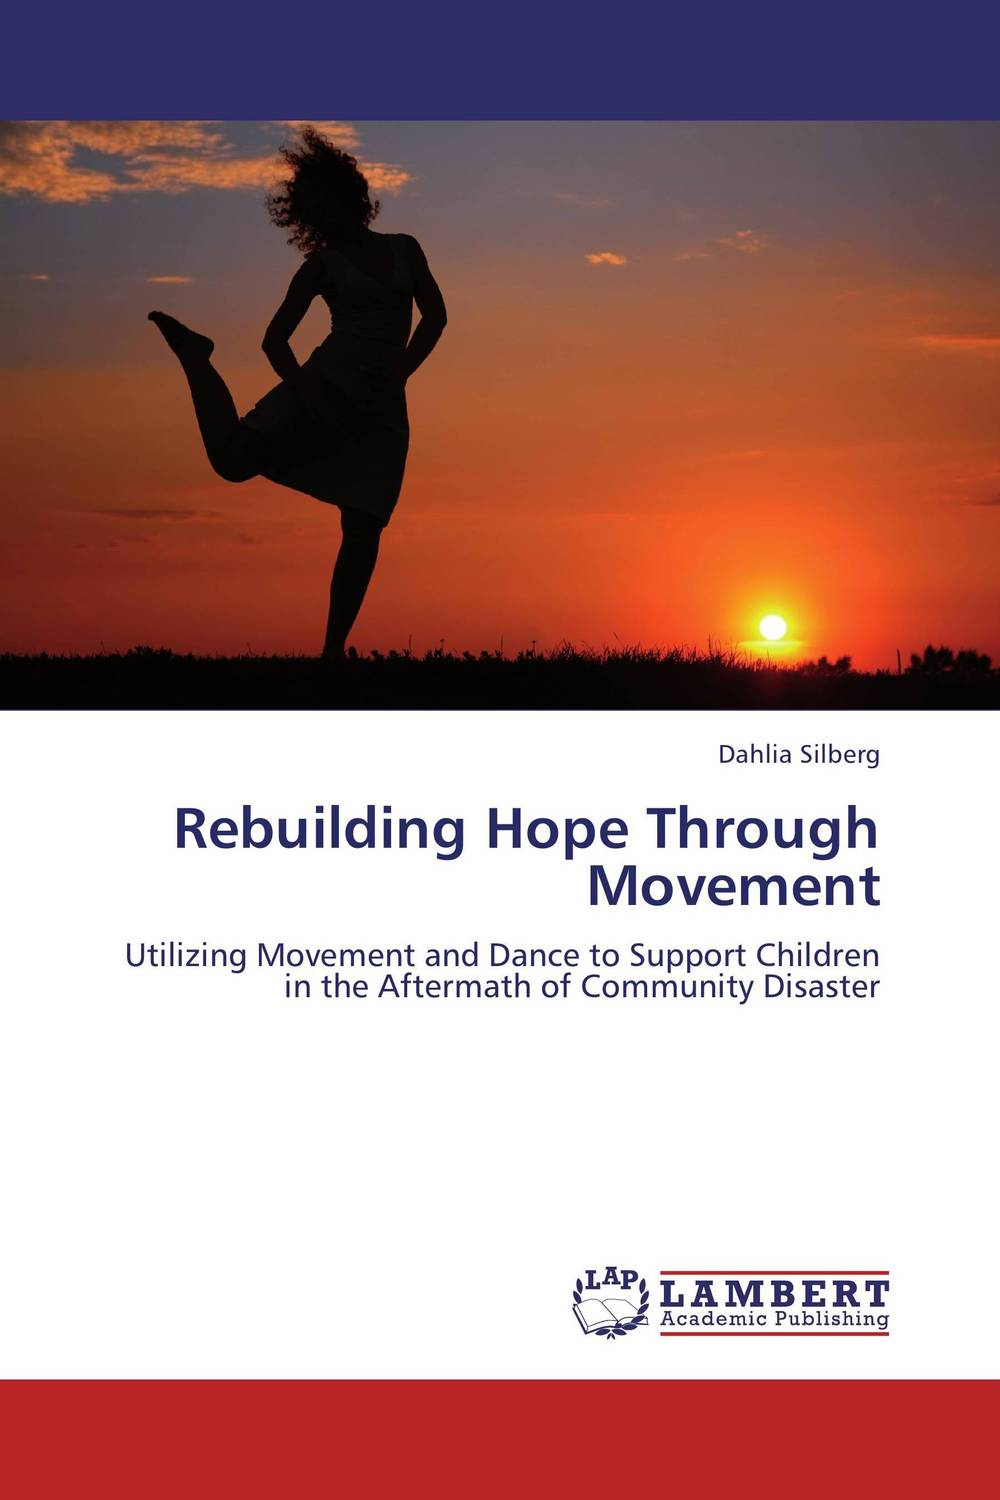 Rebuilding Hope Through Movement movement disorders in children